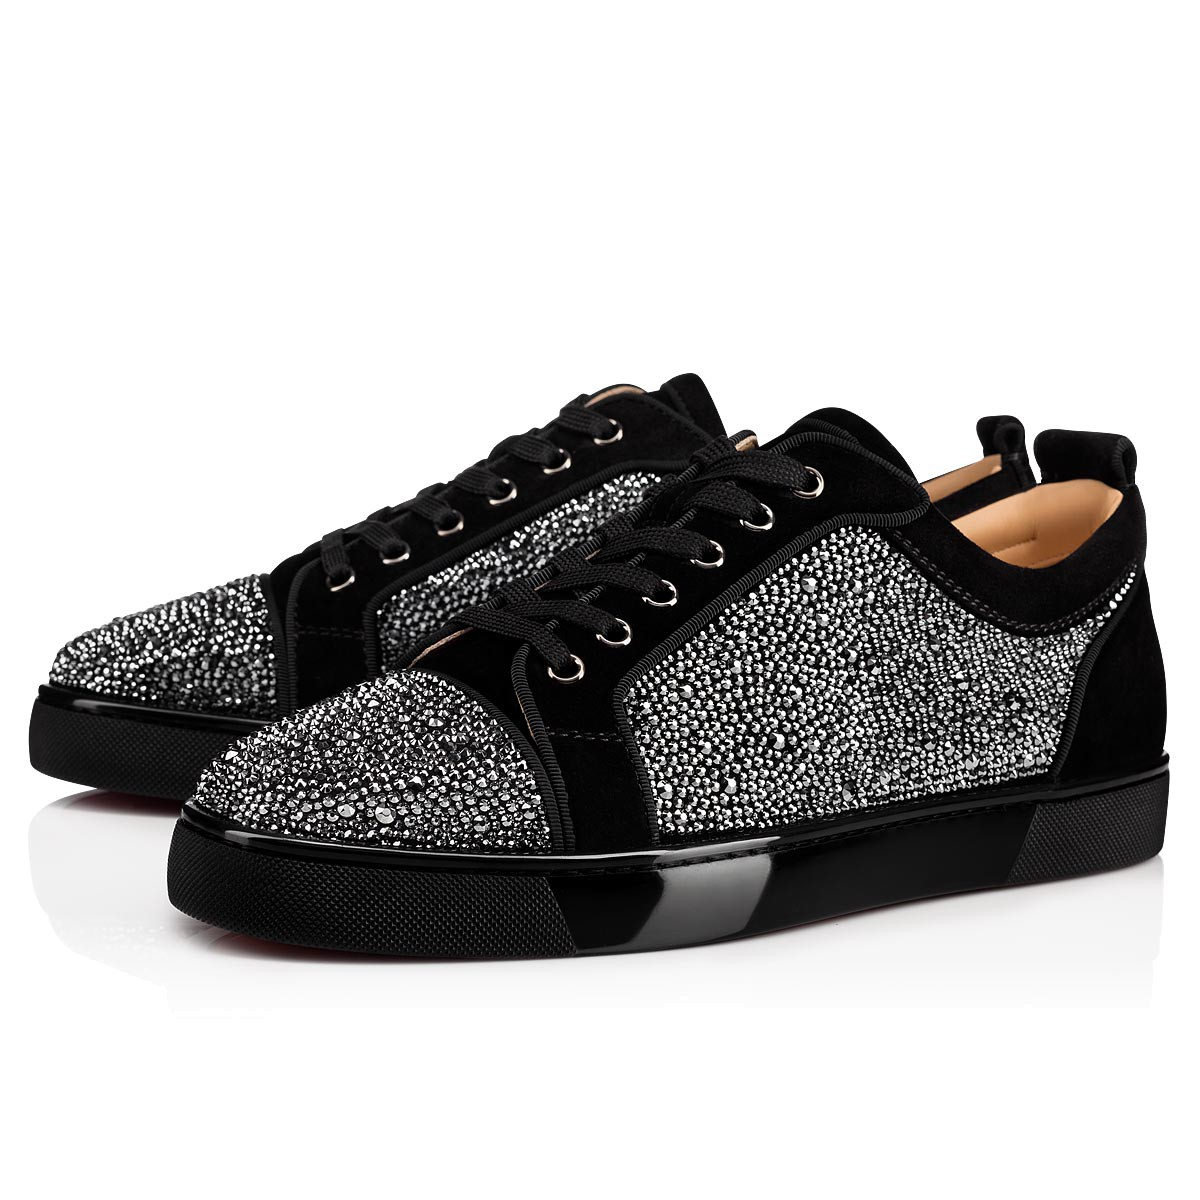 sneakers louboutin femme occasion